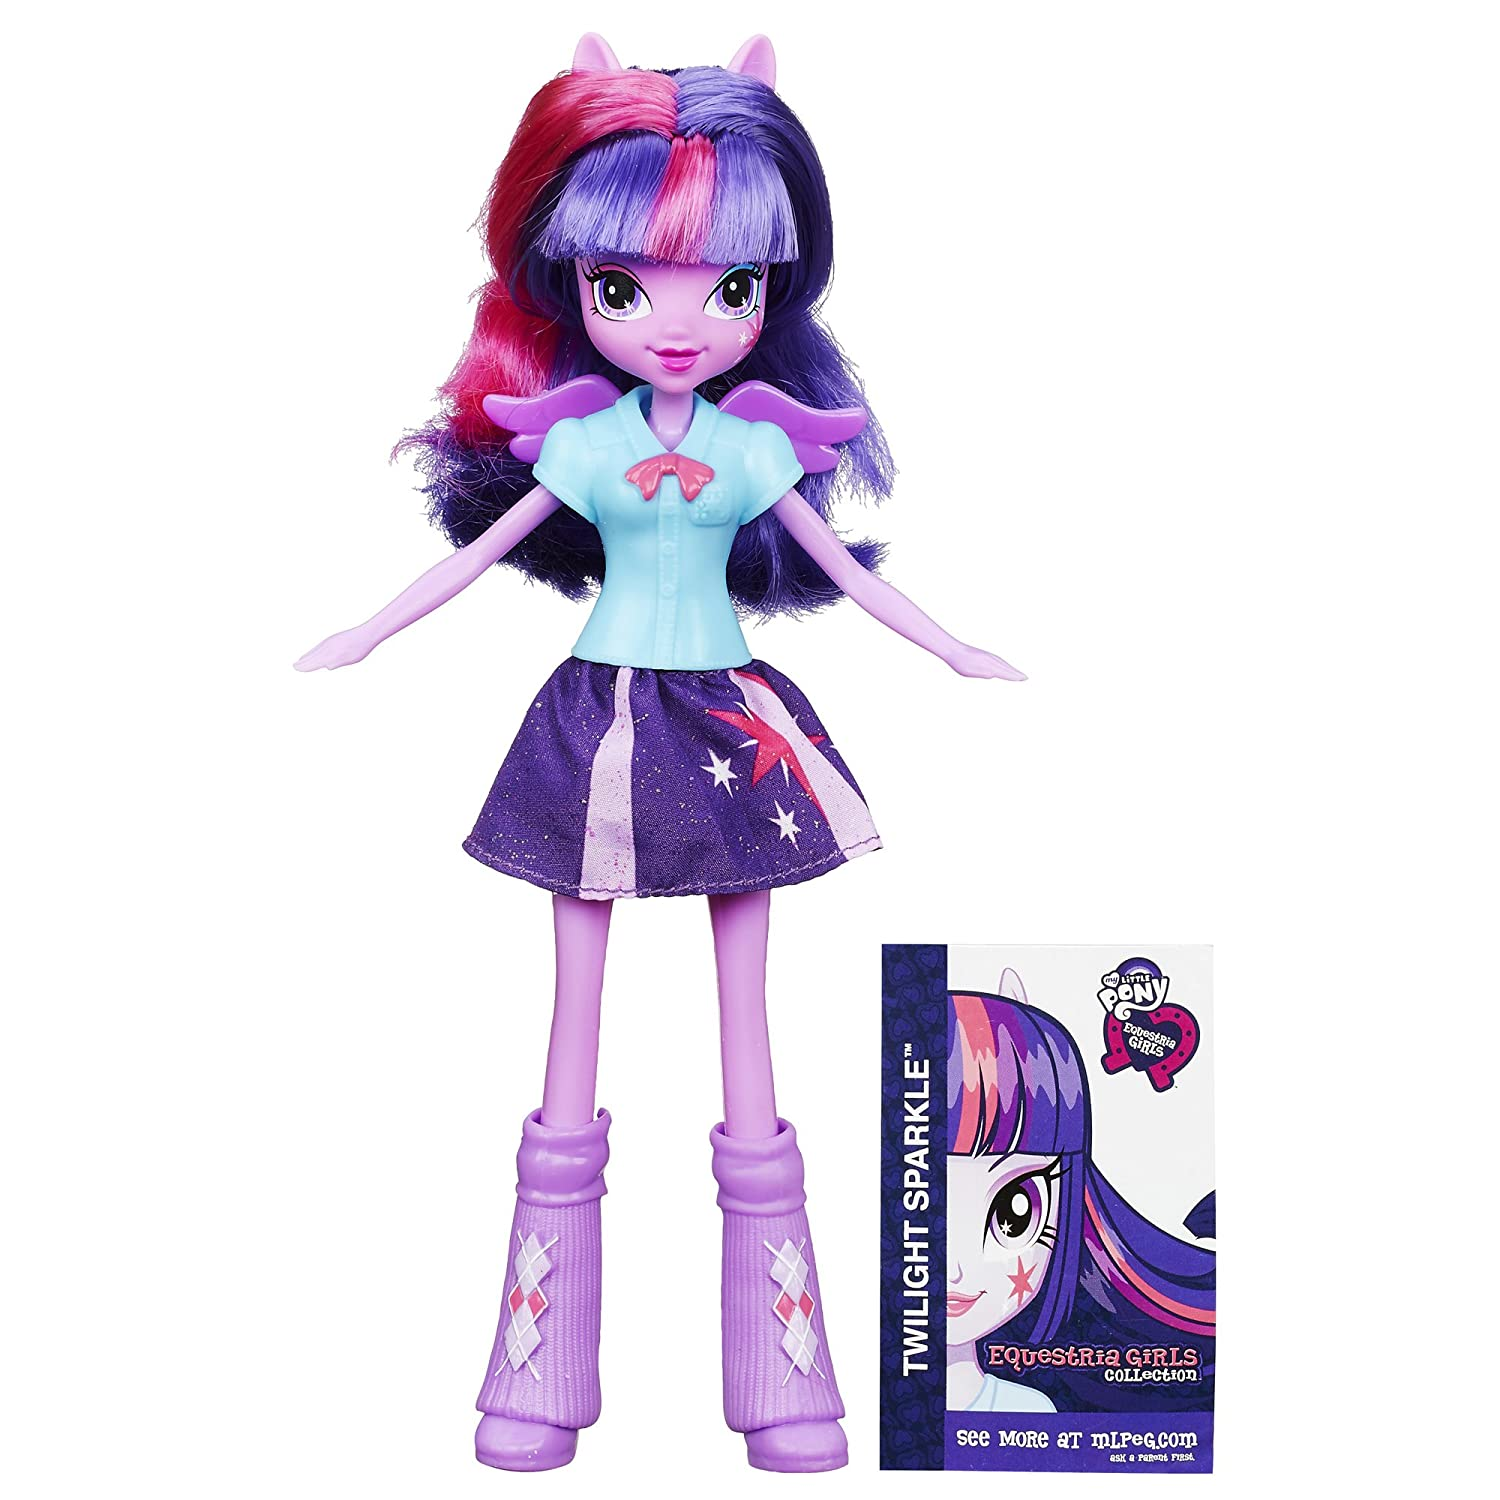 https://www.amazon.com/My-Little-Pony-Equestria-Collection/dp/B00IJZ8GQS/ref=as_sl_pc_ss_til?tag=super0bb-20&linkCode=w01&linkId=NXVVVHO23YROD7MC&creativeASIN=B00IJZ8GQS